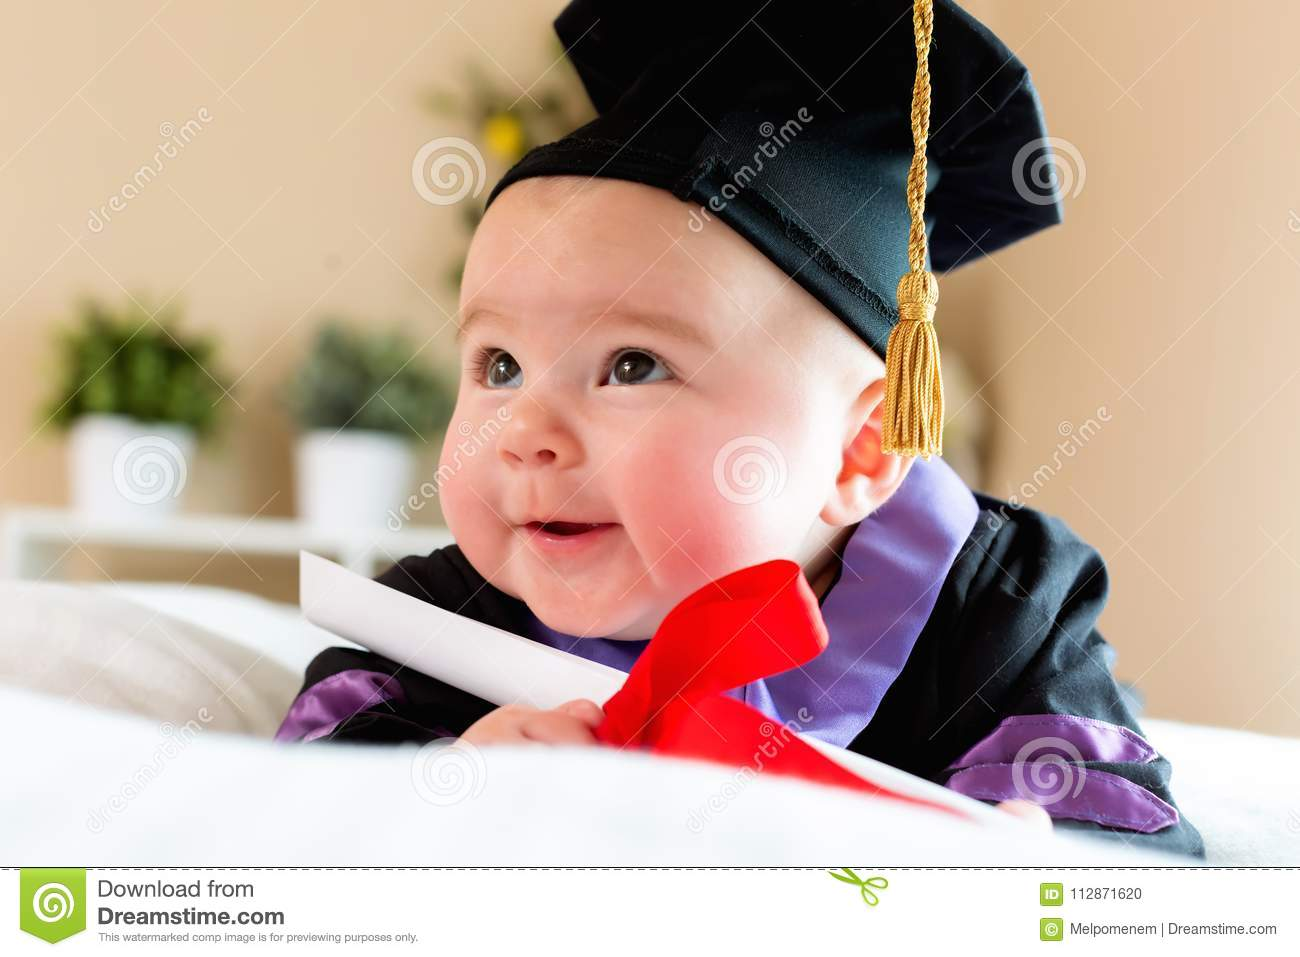 Baby Girl In Graduation Cap And Gown Stock Photo - Image of concept ...